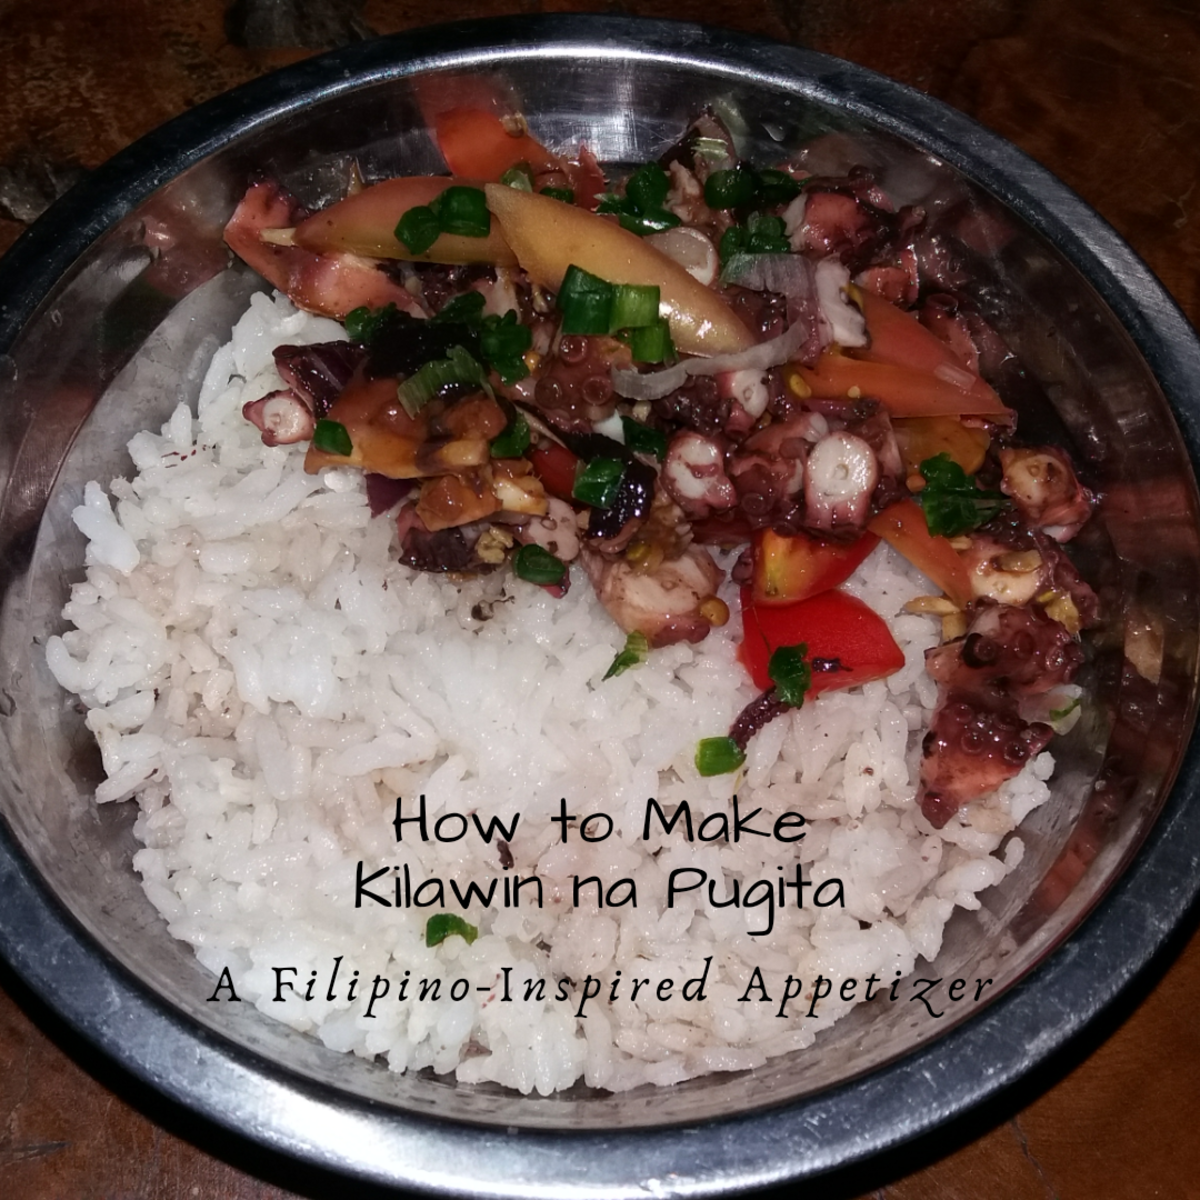 How to Make Kilawin na Pugita: A Filipino-Inspired Appetizer